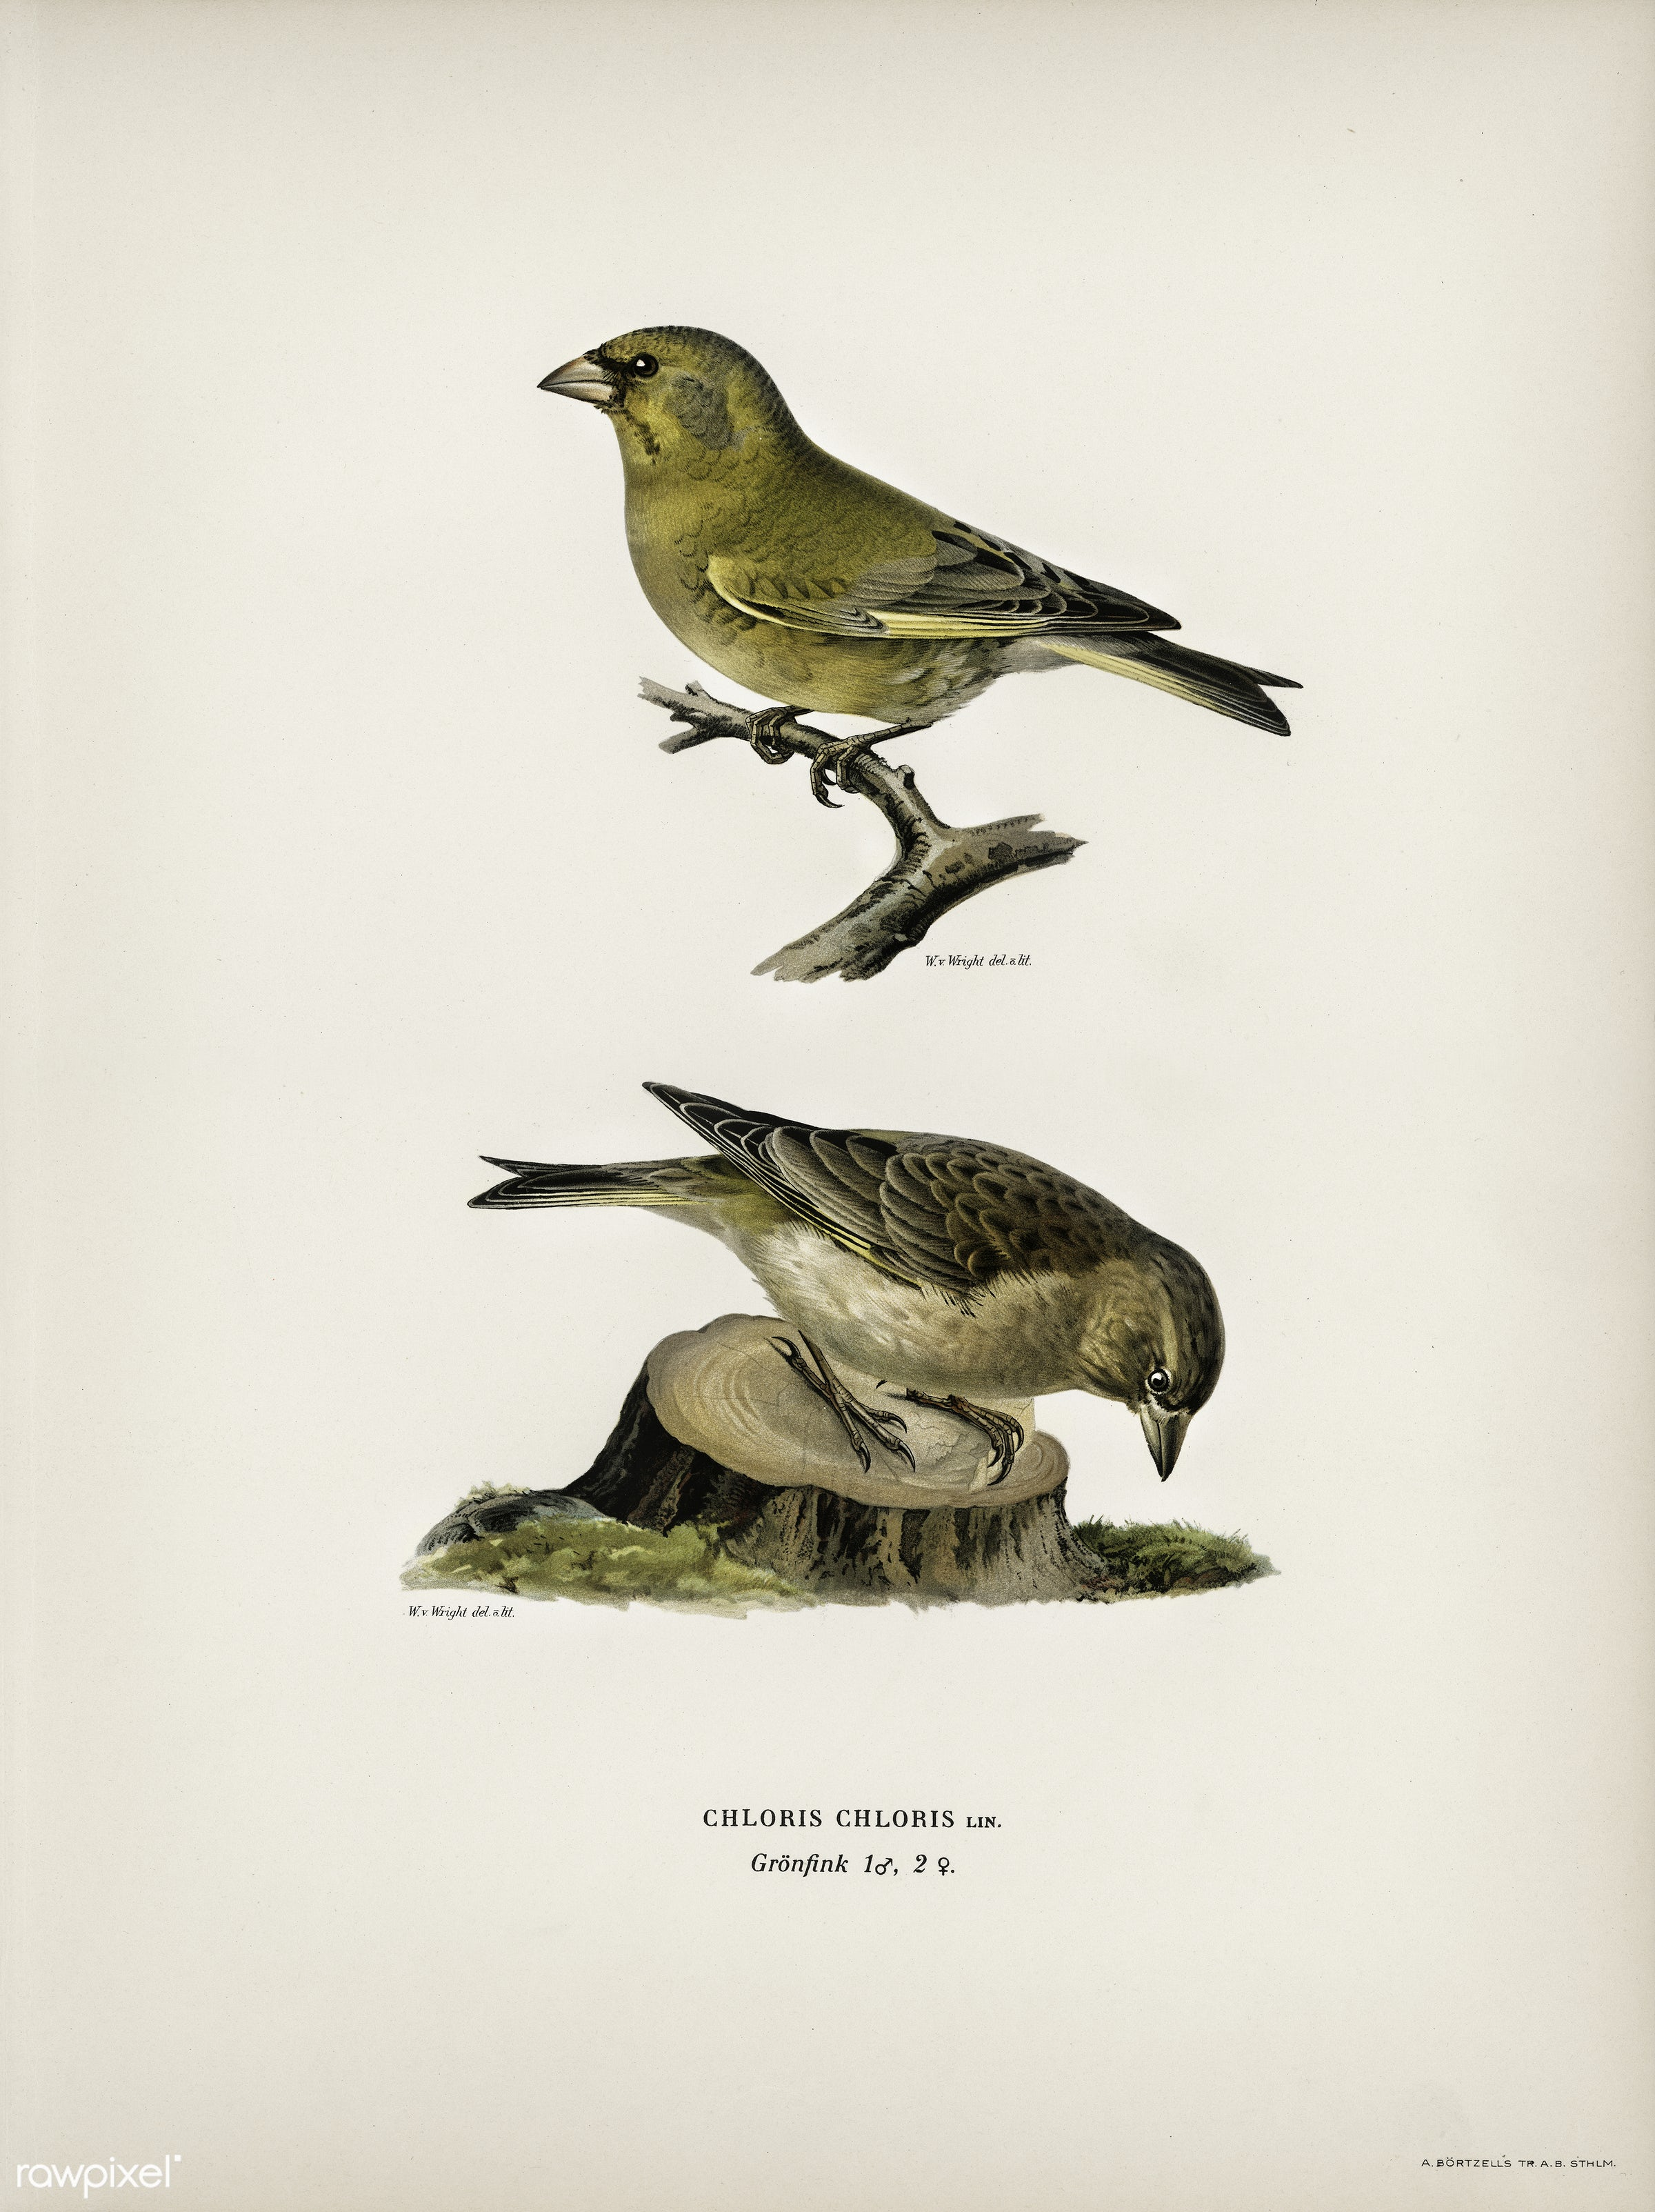 Chloris Chloris illustrated by the von Wright brothers. Digitally enhanced from our own 1929 folio version of Svenska F...